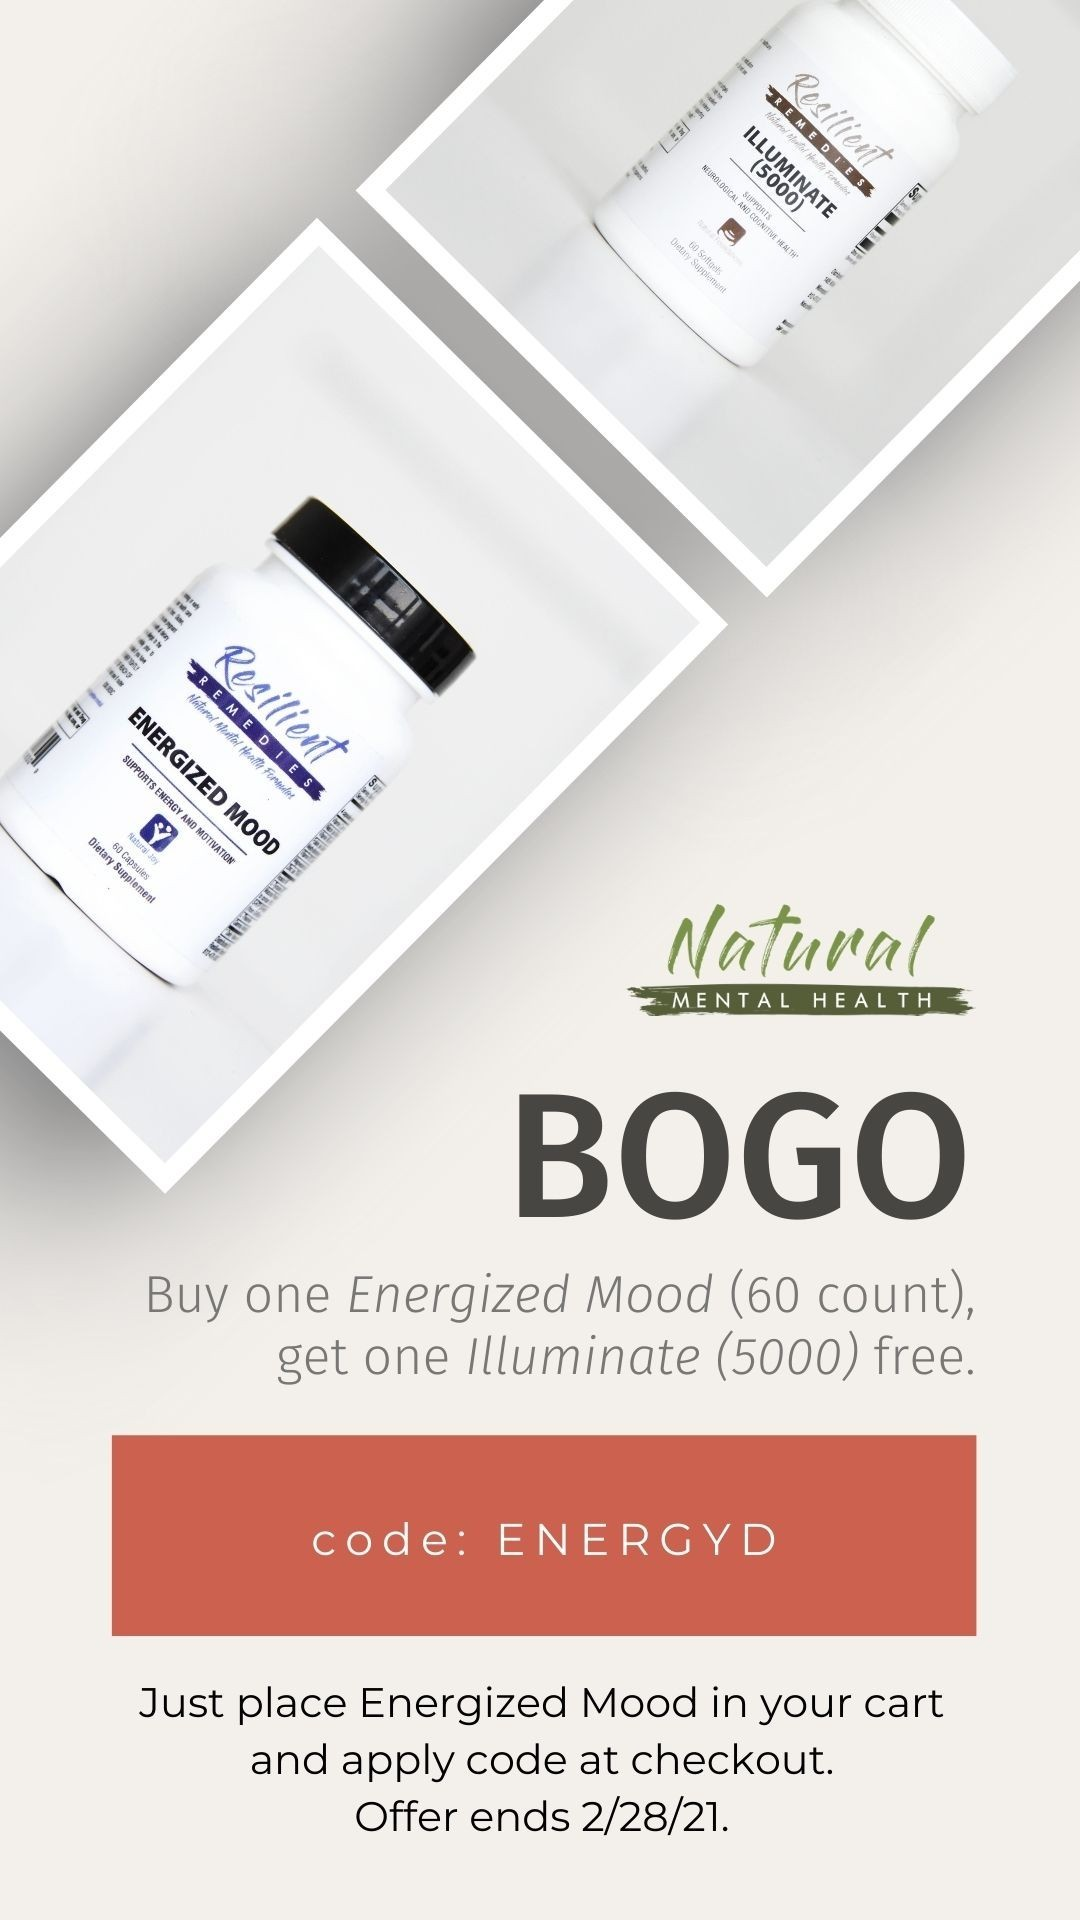 Buy one Energized Mood 60 count, get one Illuminate (5000) free. Use code: ENERGYD